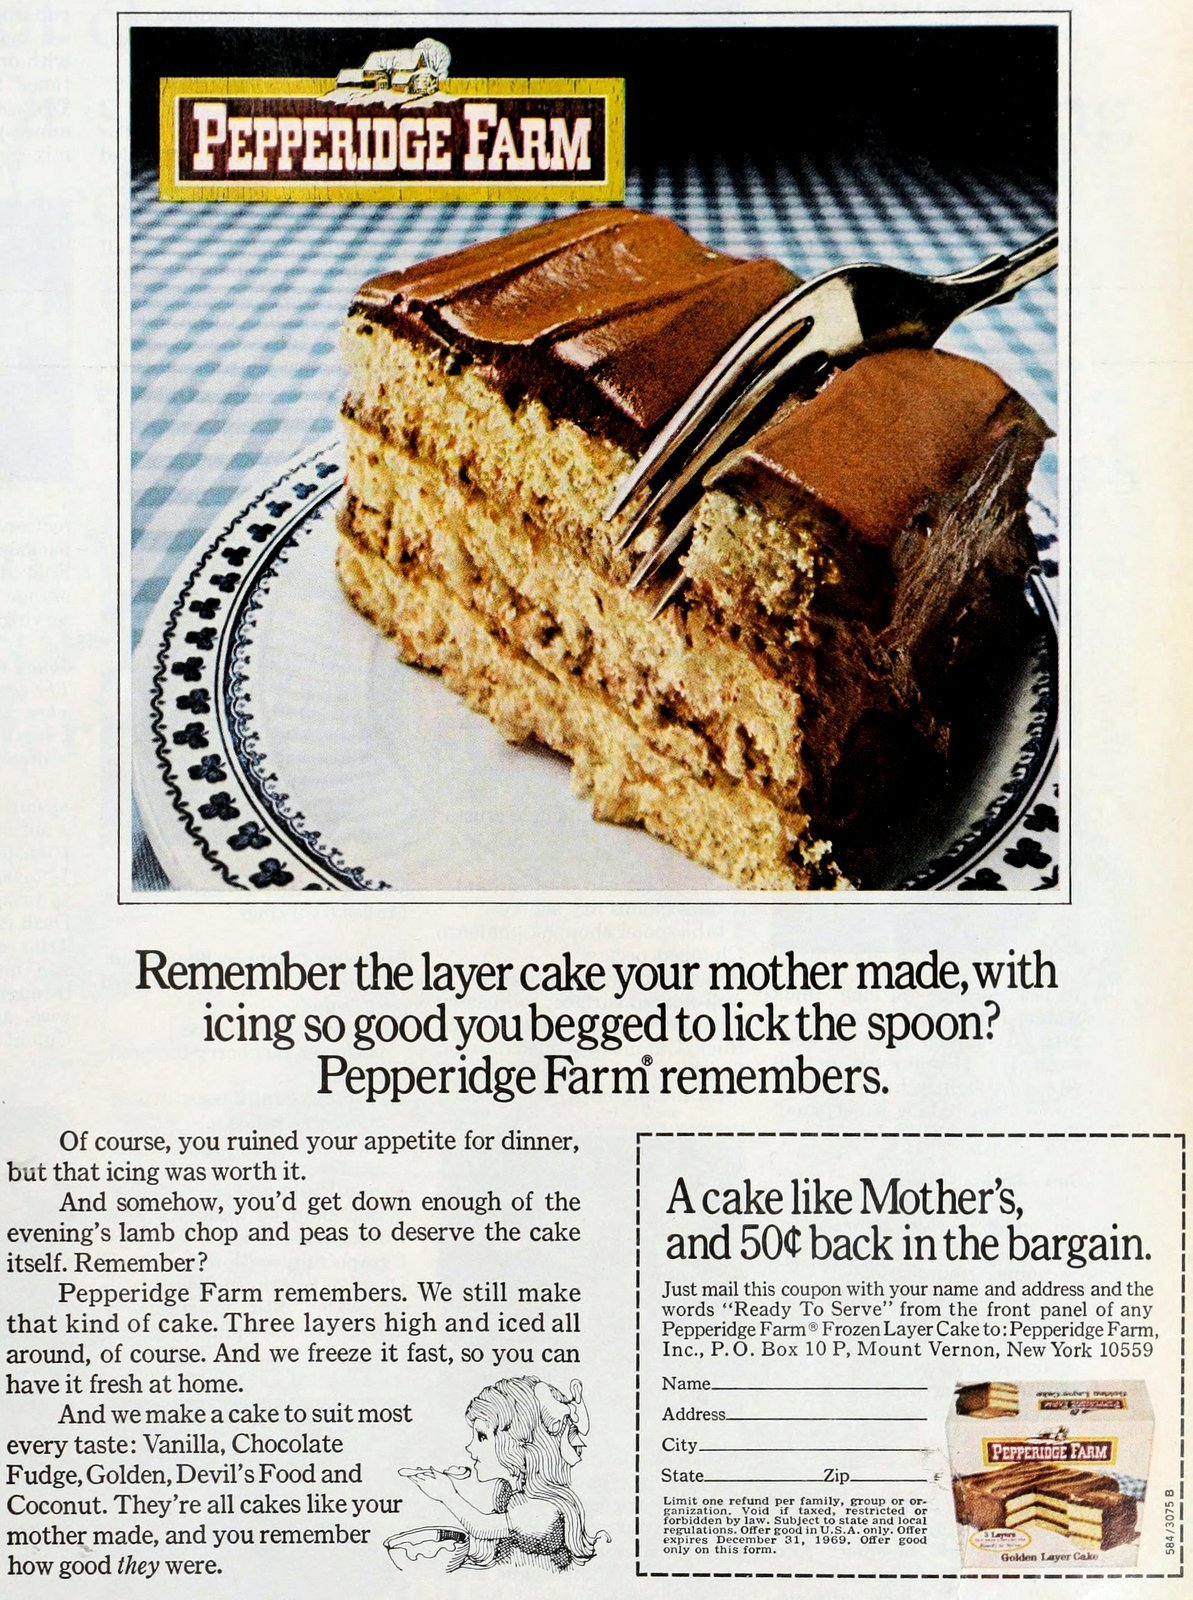 Chocolate frosted layer cake like mother's - Pepperidge Farm (1969)